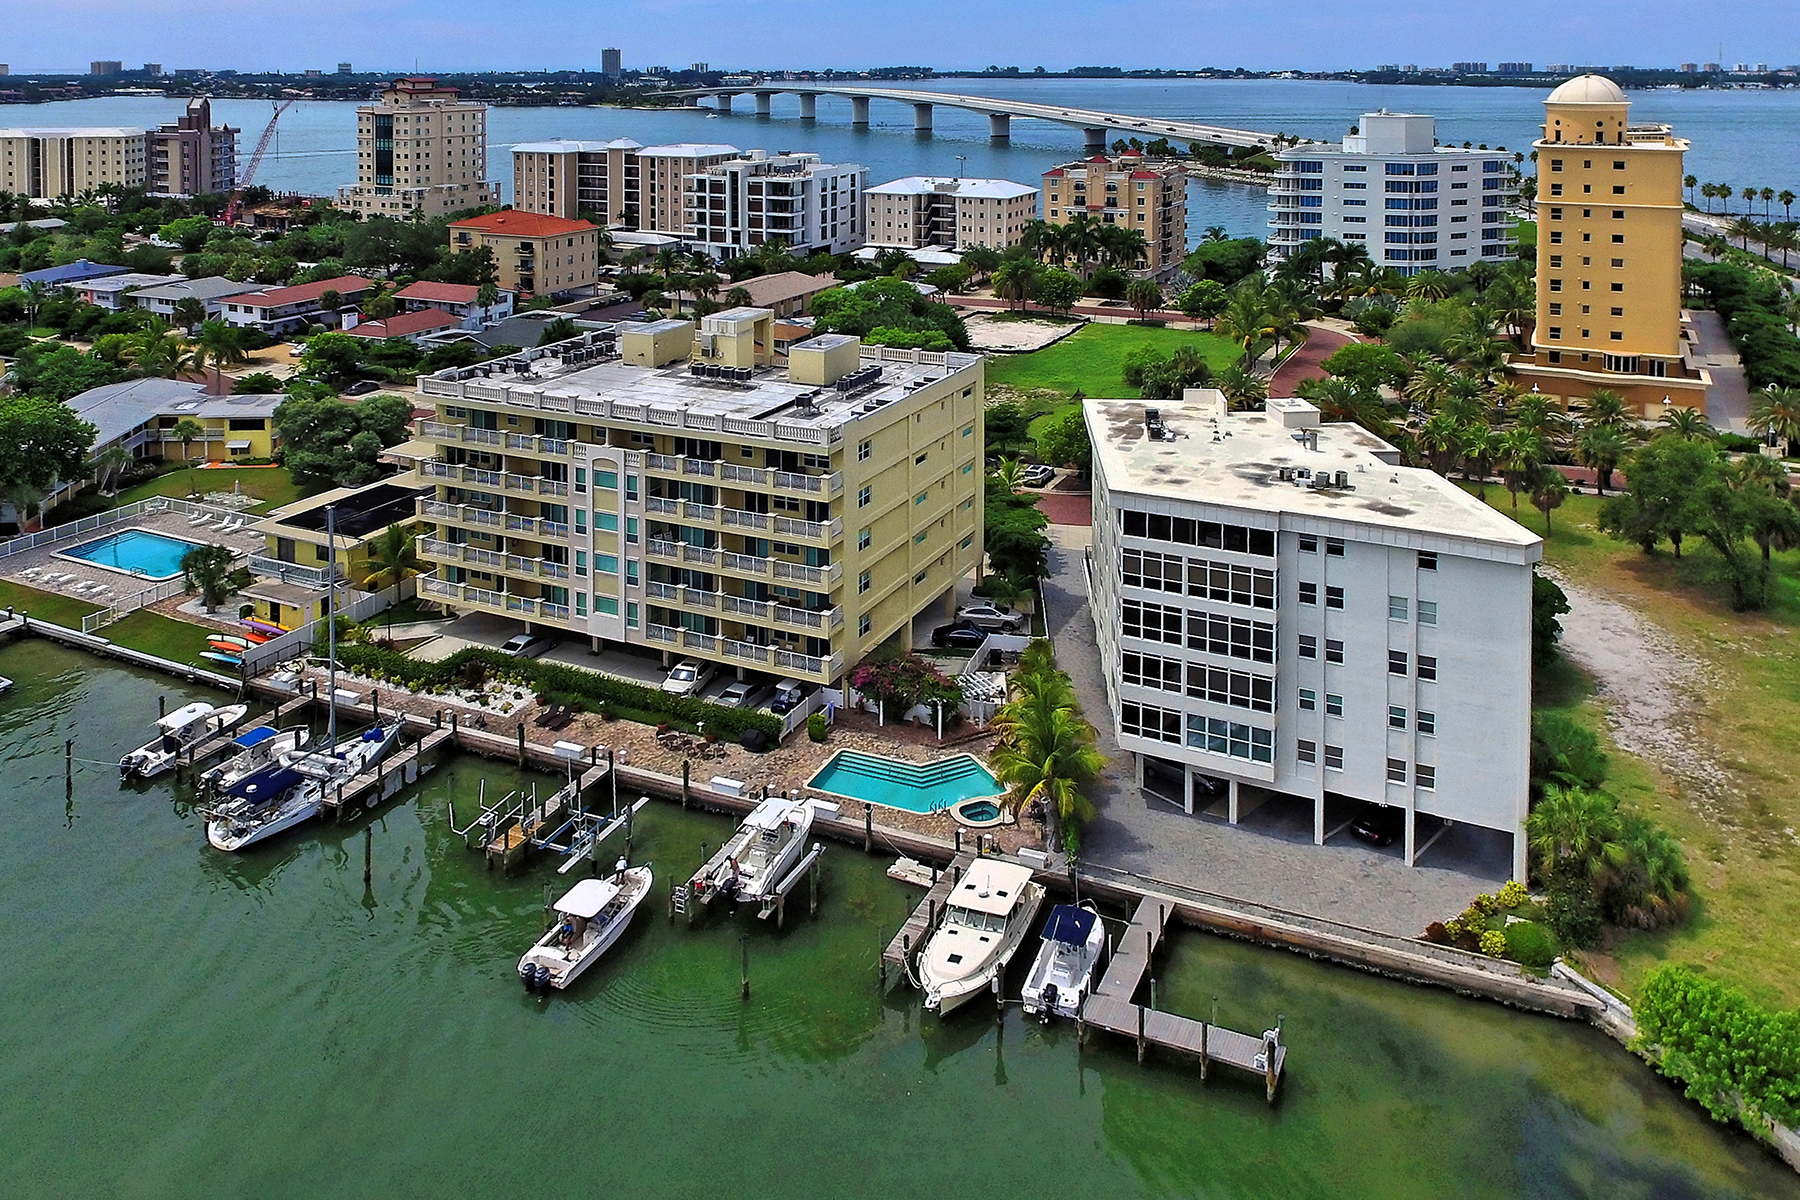 Condominium for Sale at MARINA VIEW 660 Golden Gate Pt 32, Sarasota, Florida 34236 United States